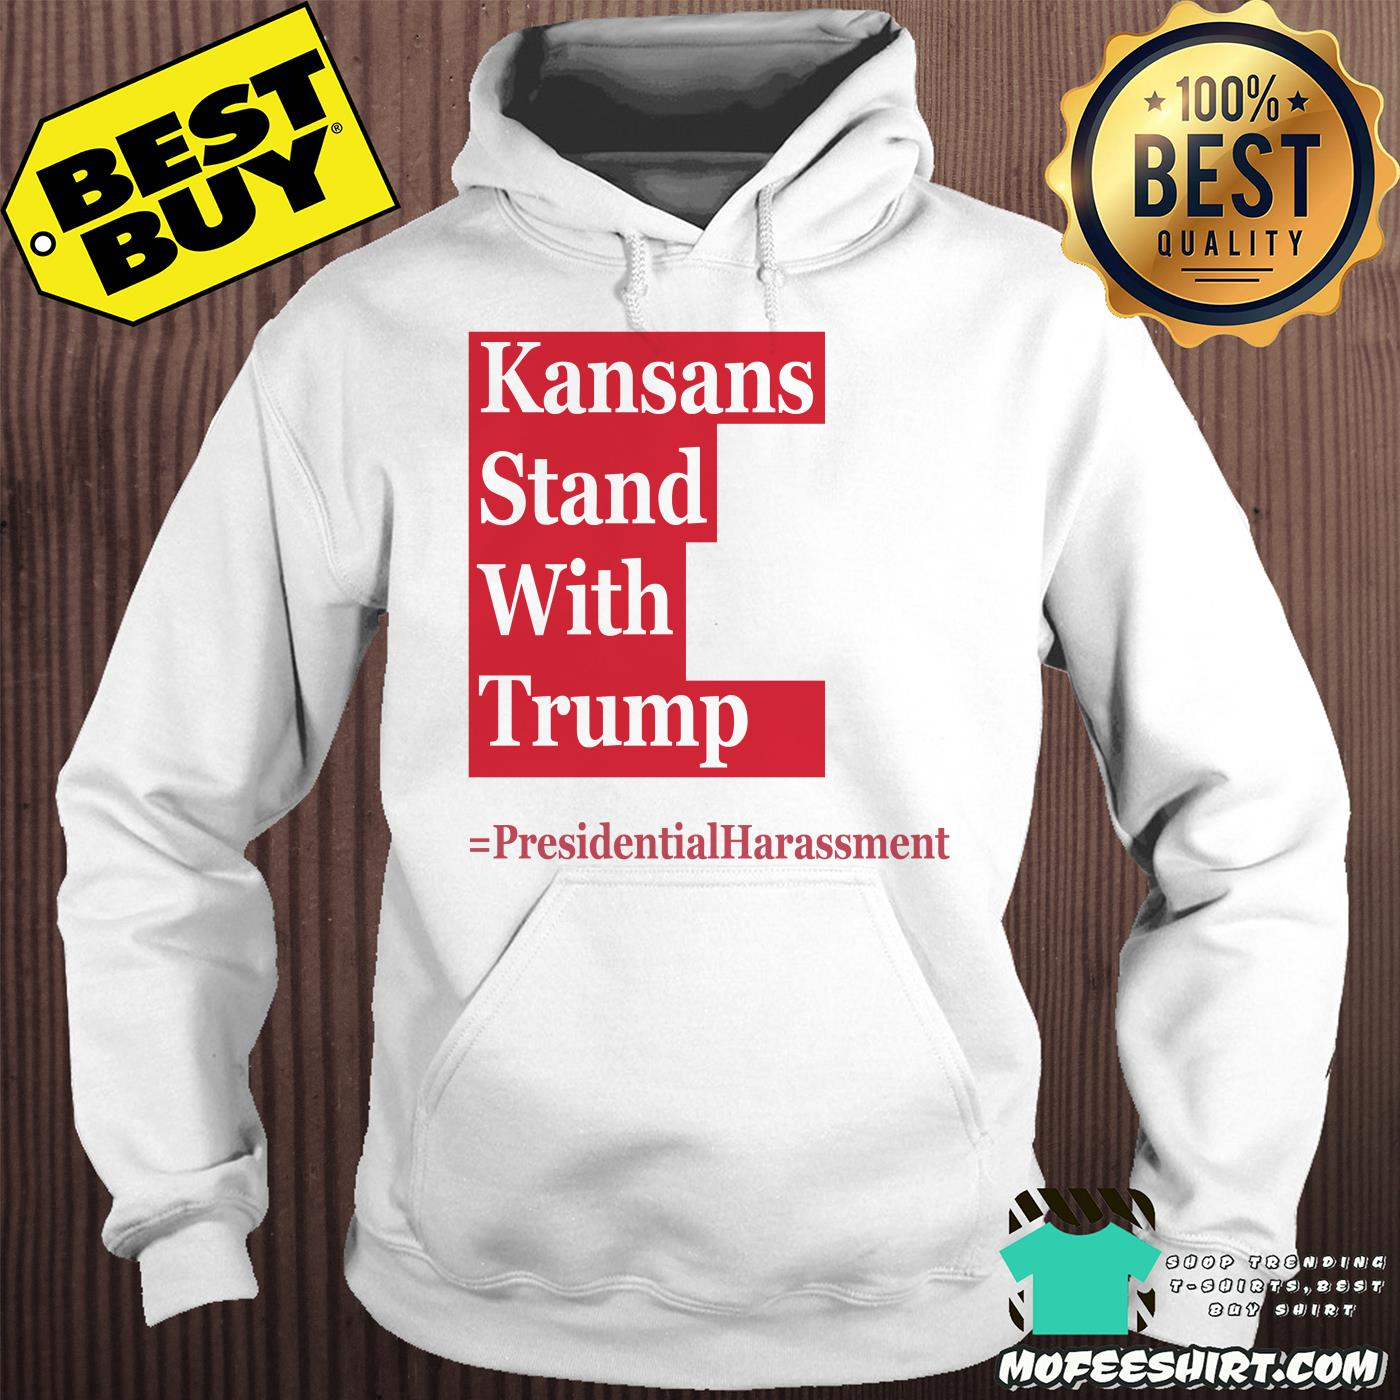 kansans stand with trump presidential harassment hoodie - Kansans stand with Trump Presidential Harassment shirt